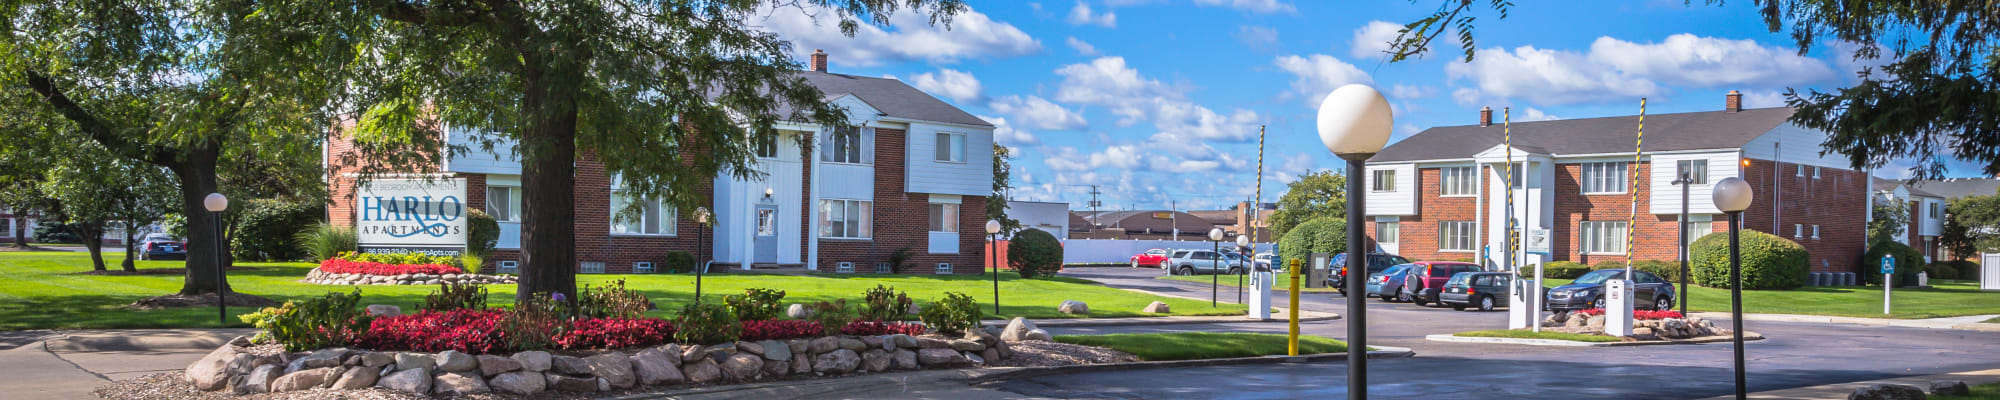 Pet friendly apartments in Warren, Michigan at Harlo Apartments